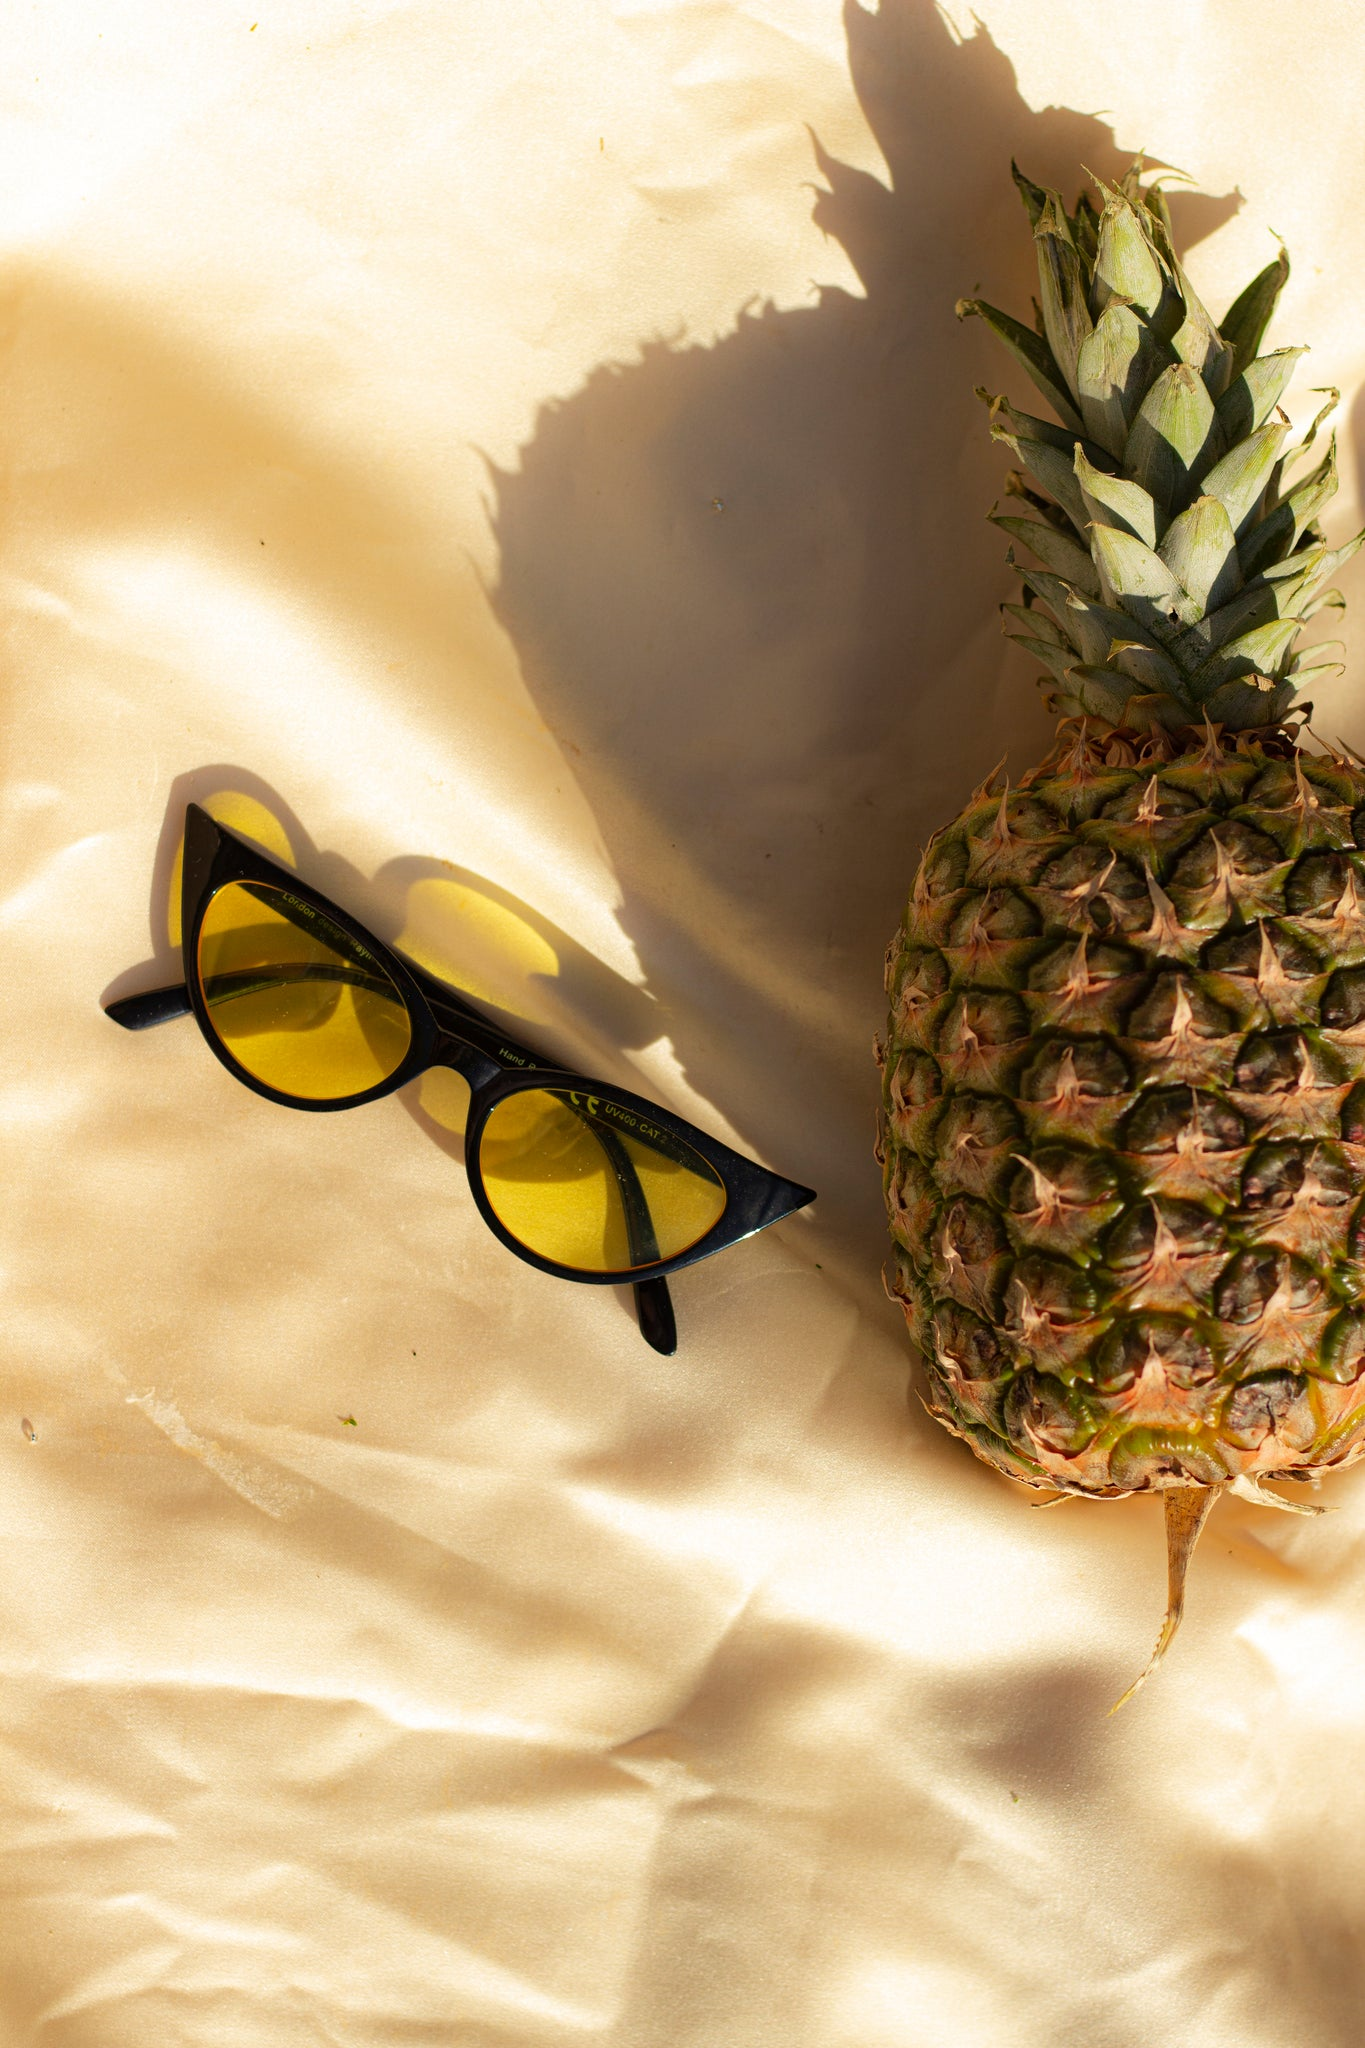 Black Cat Eye Yellow Tint Sunglasses - Sugar + Style